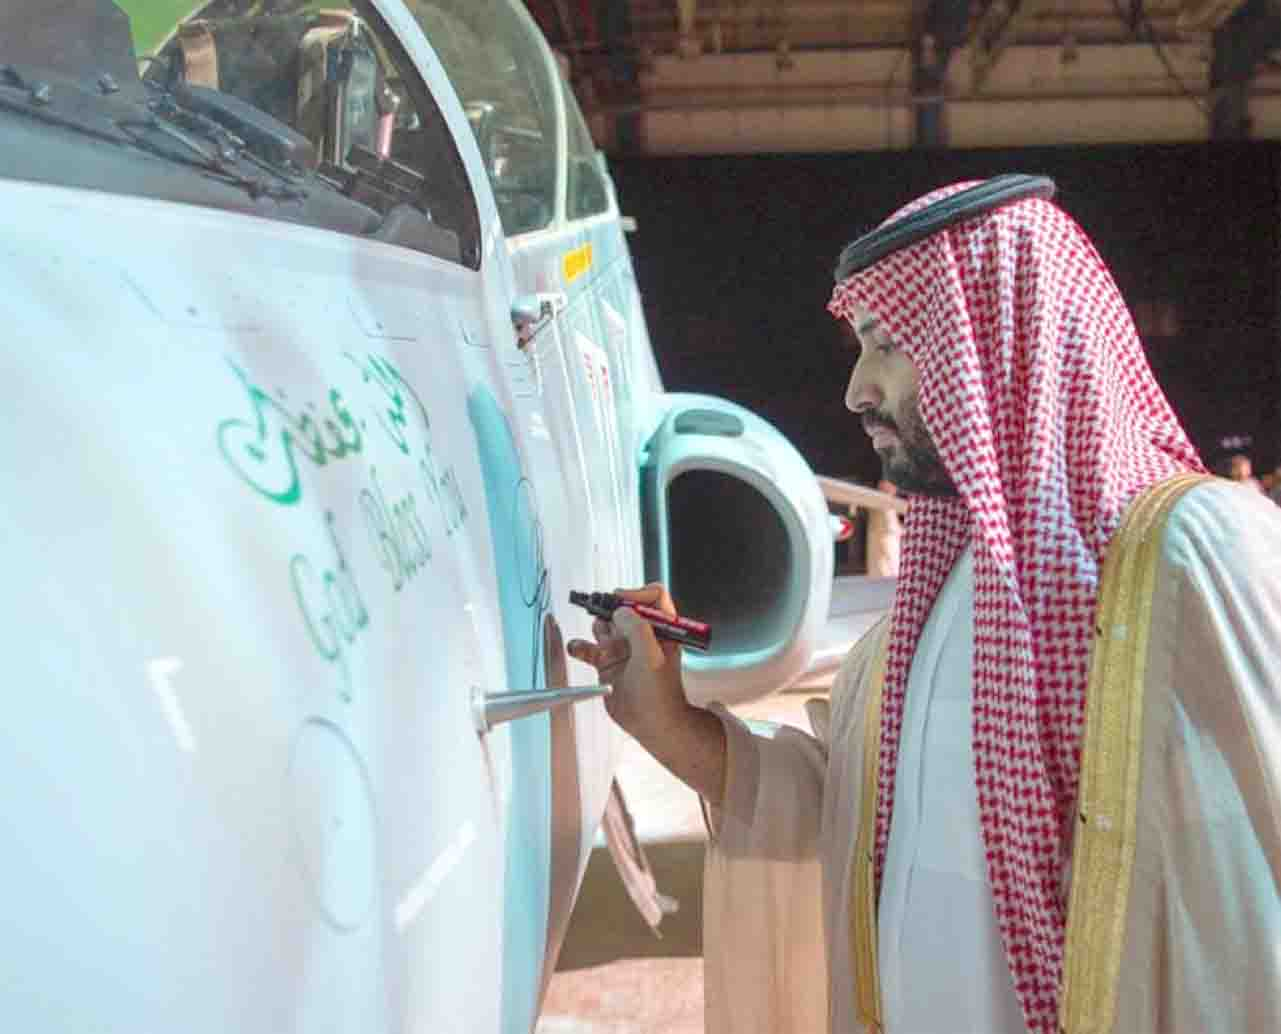 Saudi Crown Prince Mohammed bin Salman bin Abdulaziz inscribes his signature on the first Saudi-built Hawk aircraft at the launching event in Dhahran, March 31. (SPA)